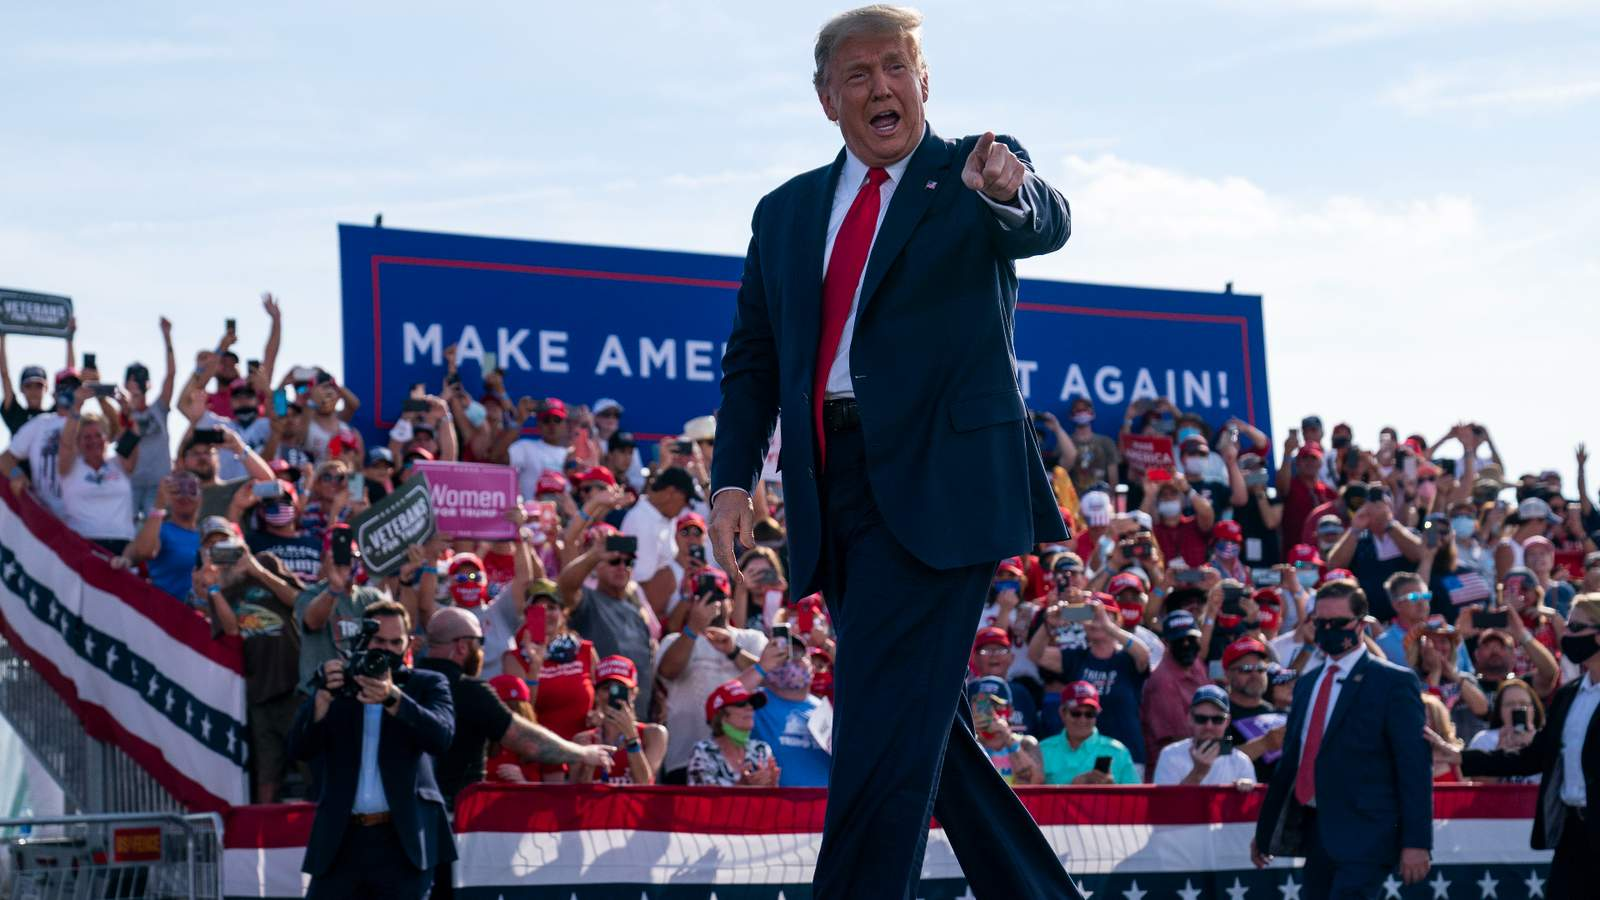 President Trump to campaign in Central Florida Friday